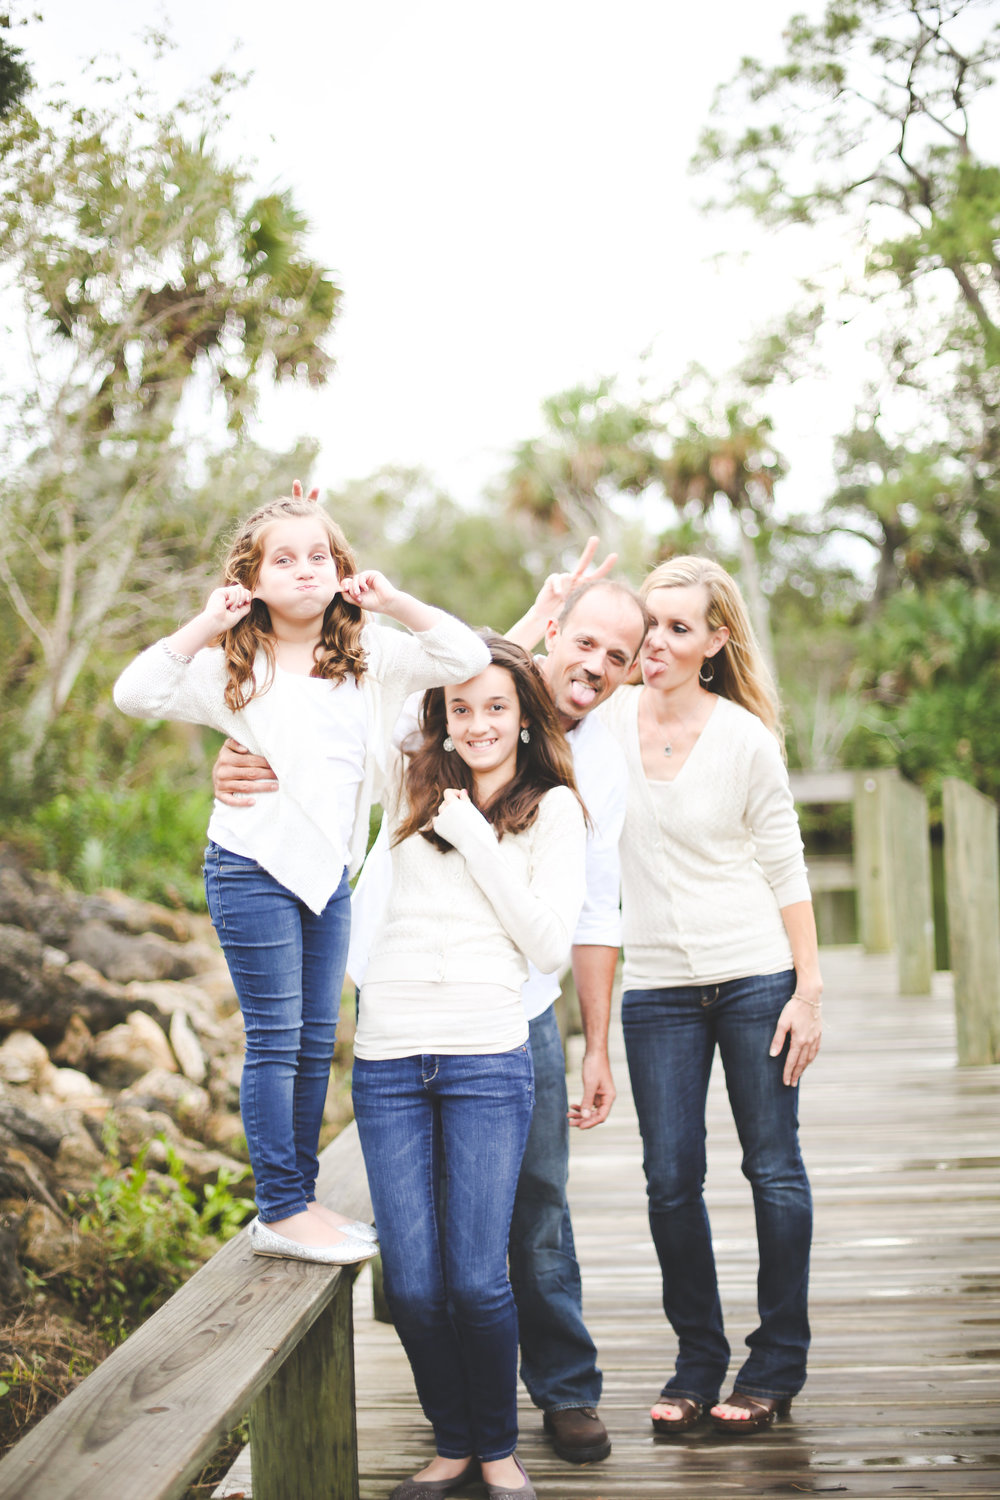 Danielle took family pictures for us at Christmas time and did a beautiful job!!! She is very creative and so sweet!!! My kids both loved her! She makes you feel very comfortable and takes her time, does not rush. She also listens to your ideas and what you want!! I will be using her again!!!    -- Melissa (The Barnes Family)